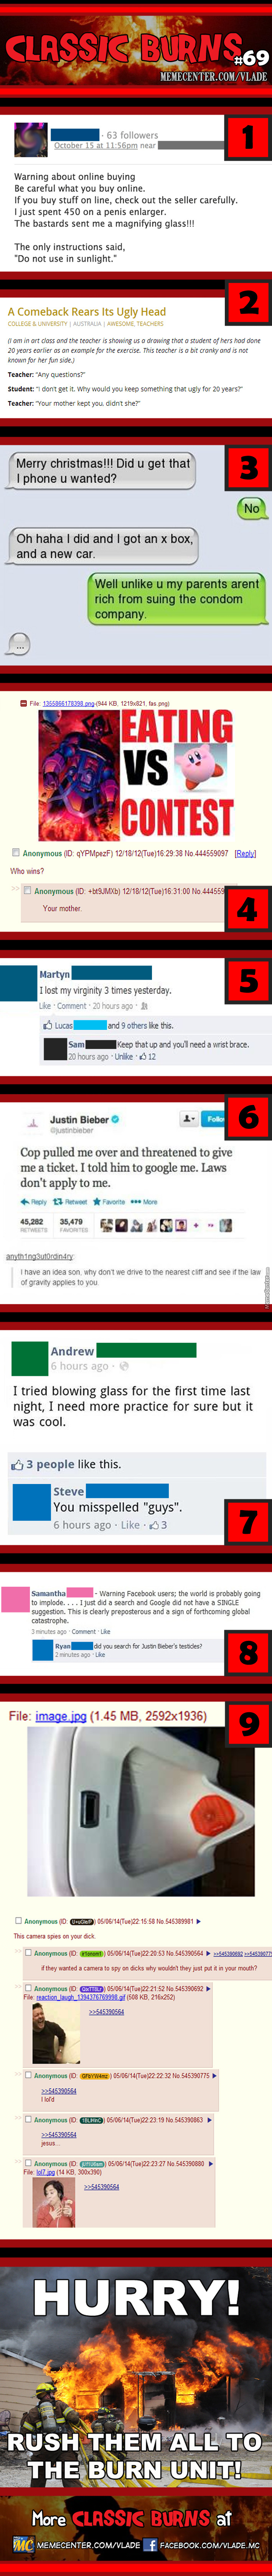 funny-picture-compilation-classic-burns